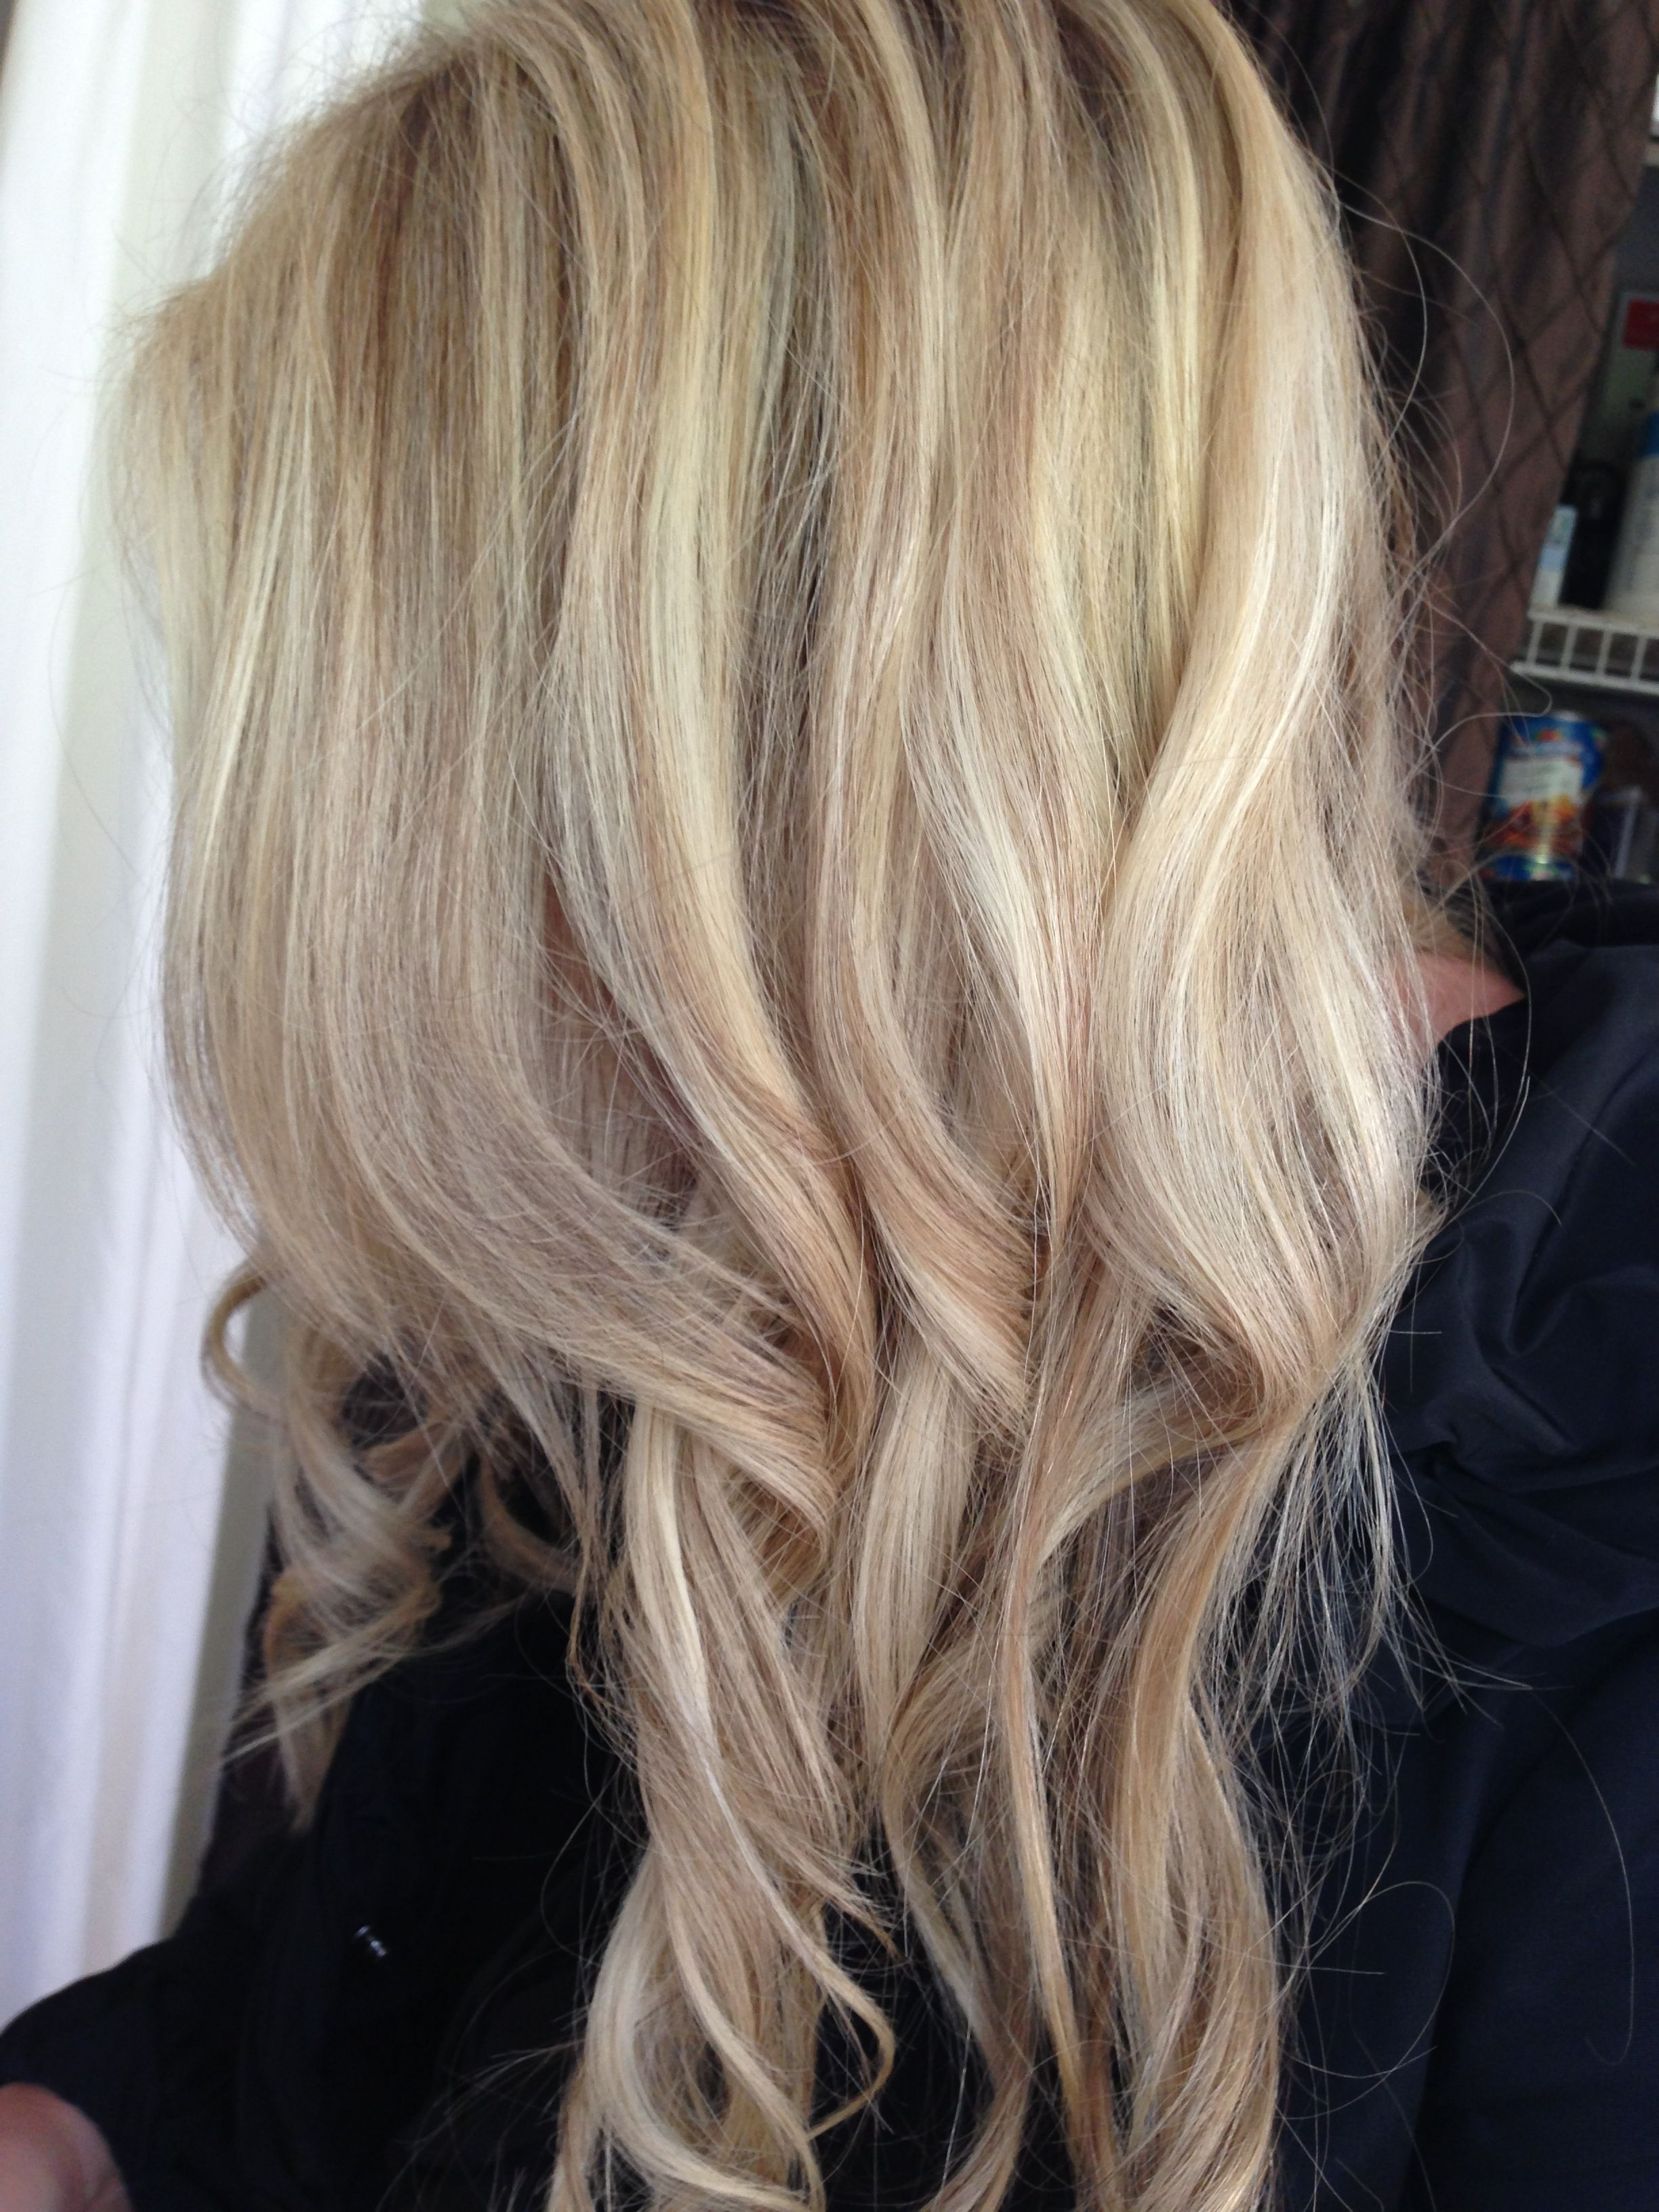 Blonde specialist Foil highlights by Jama Be e Hair Salon